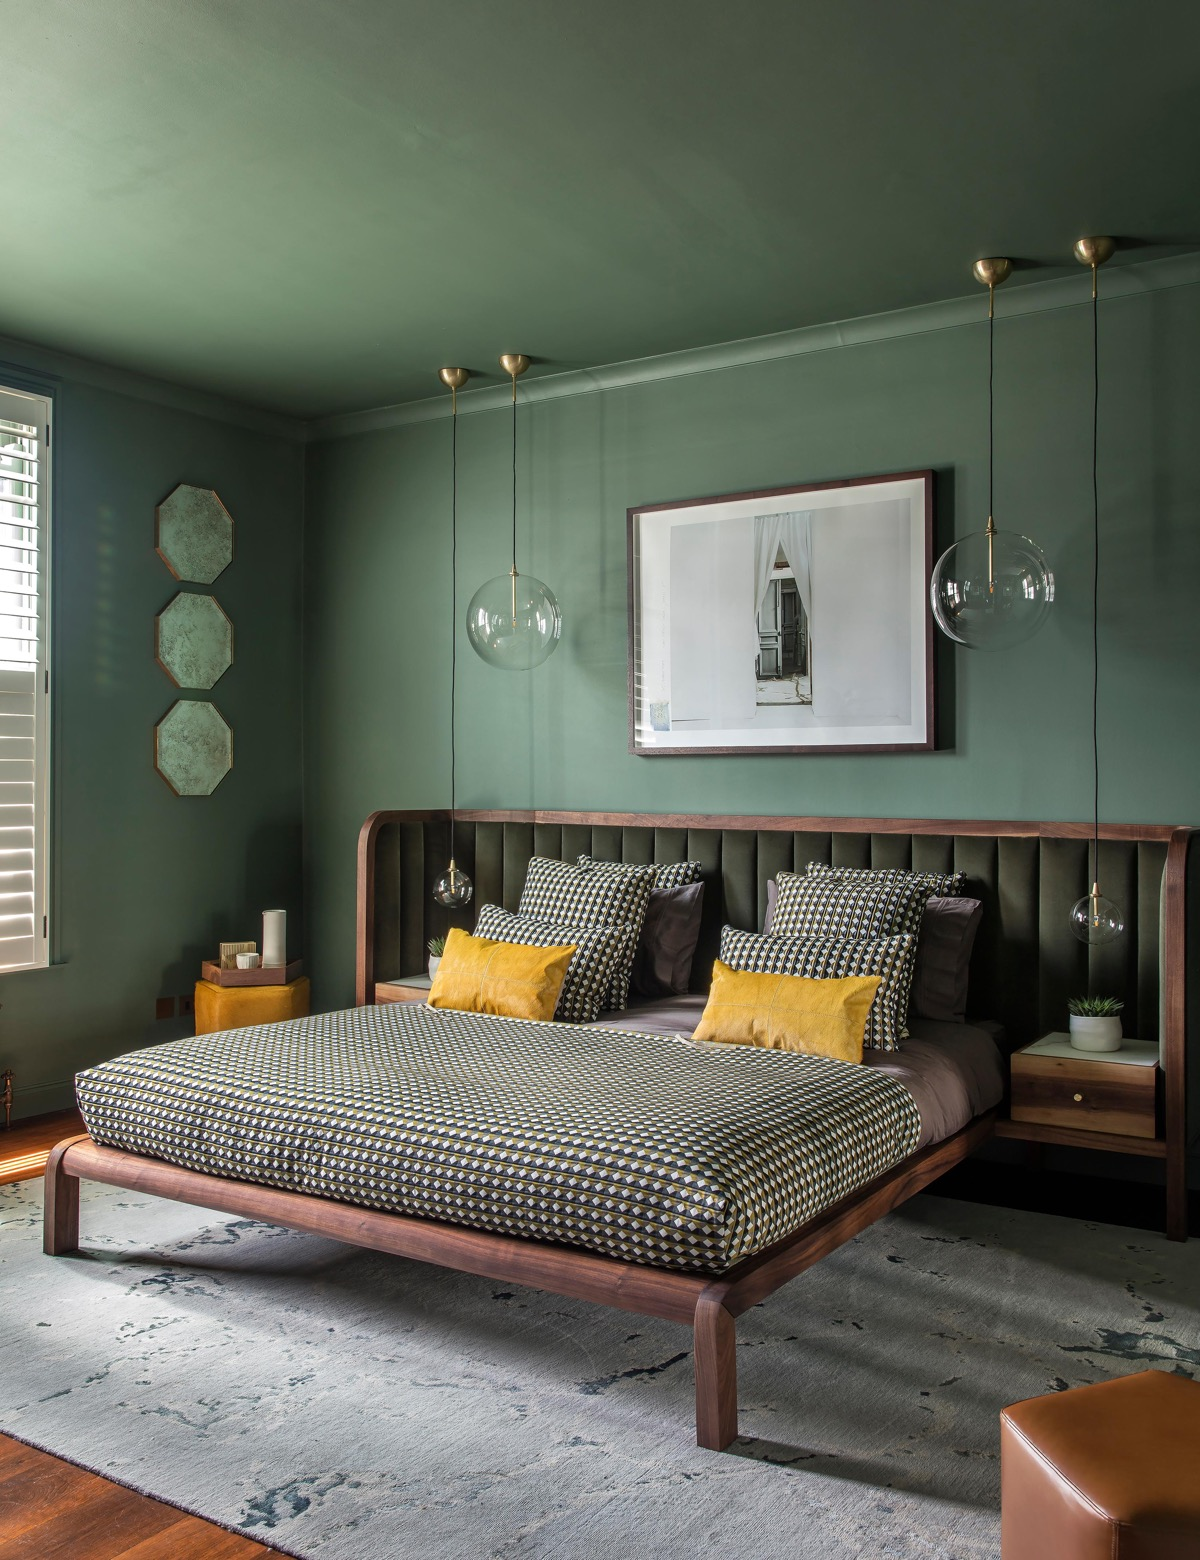 Bedroom Paint Color Ideas: What's Your Color Personality